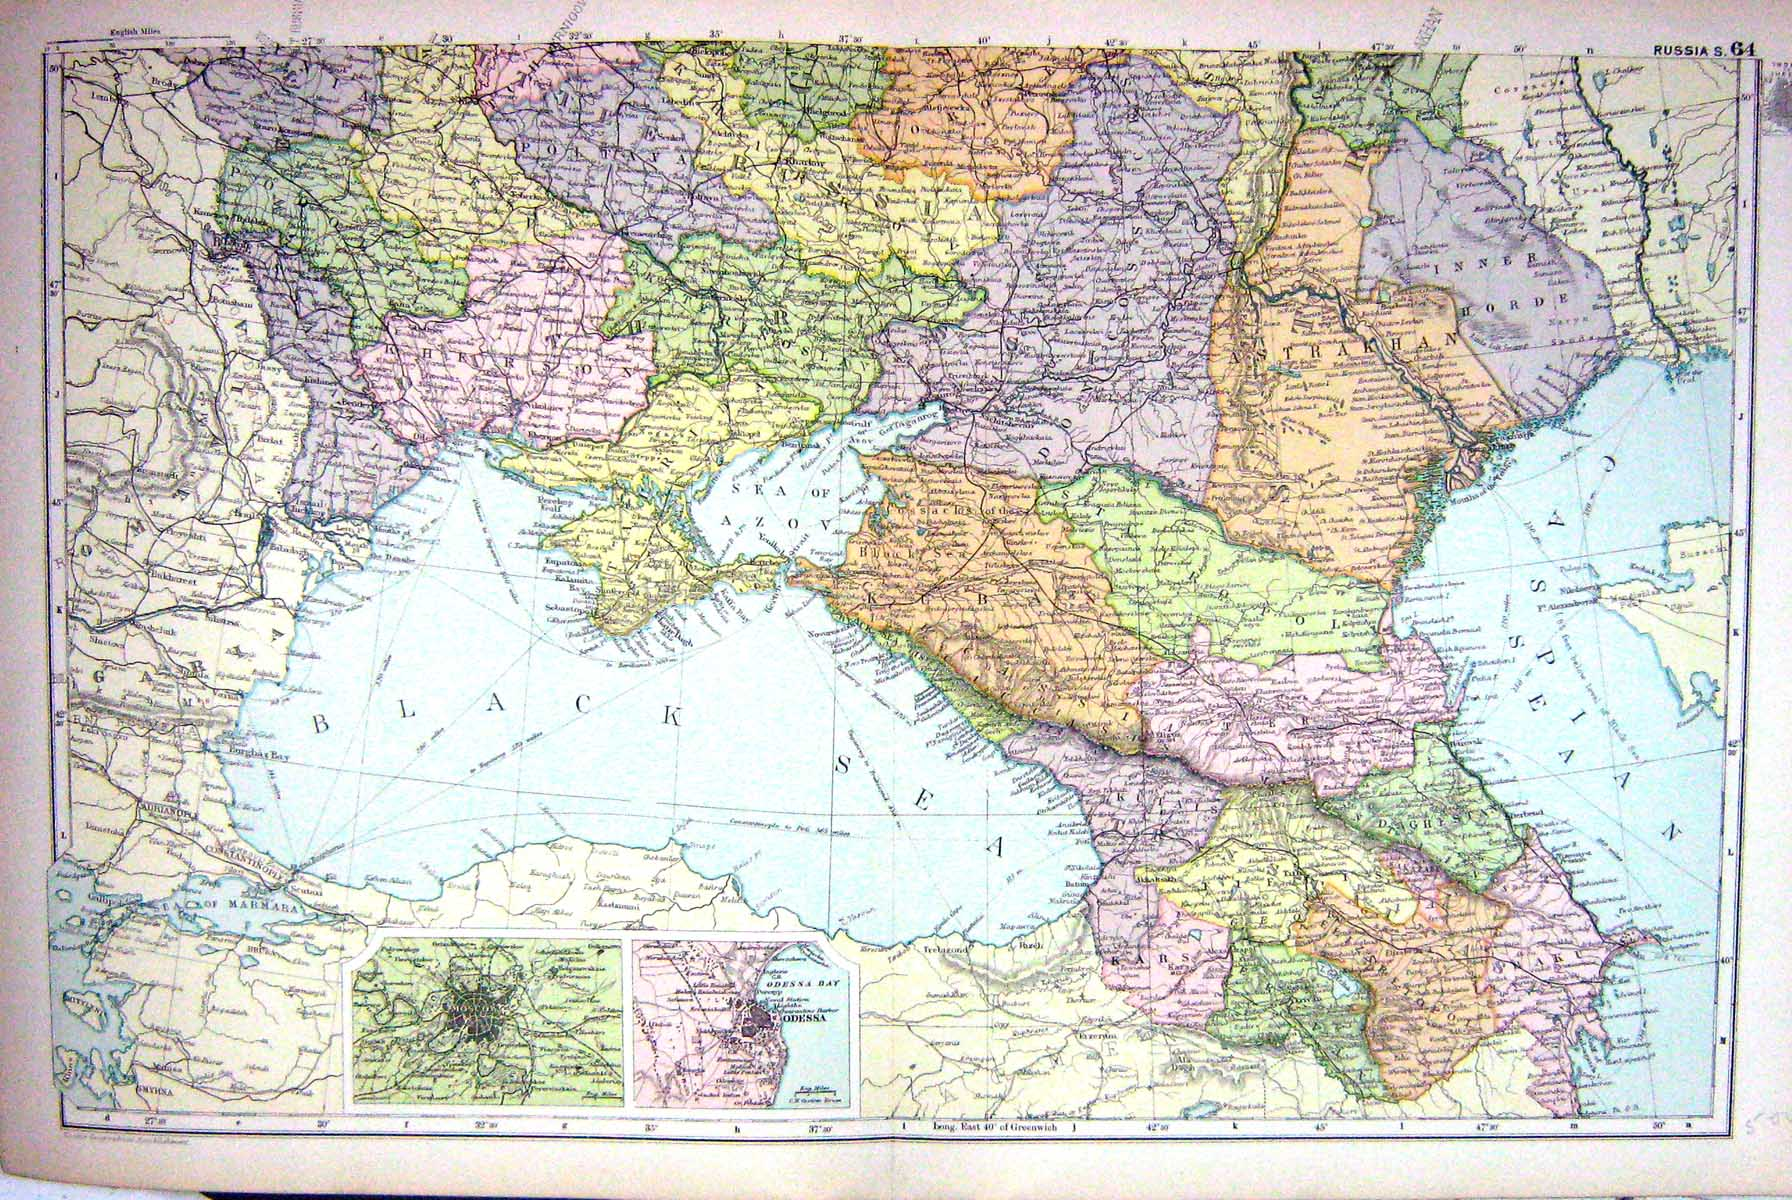 25 Print Map Bacon 1911 South Russia Plan Odessa Moscow Black Sea